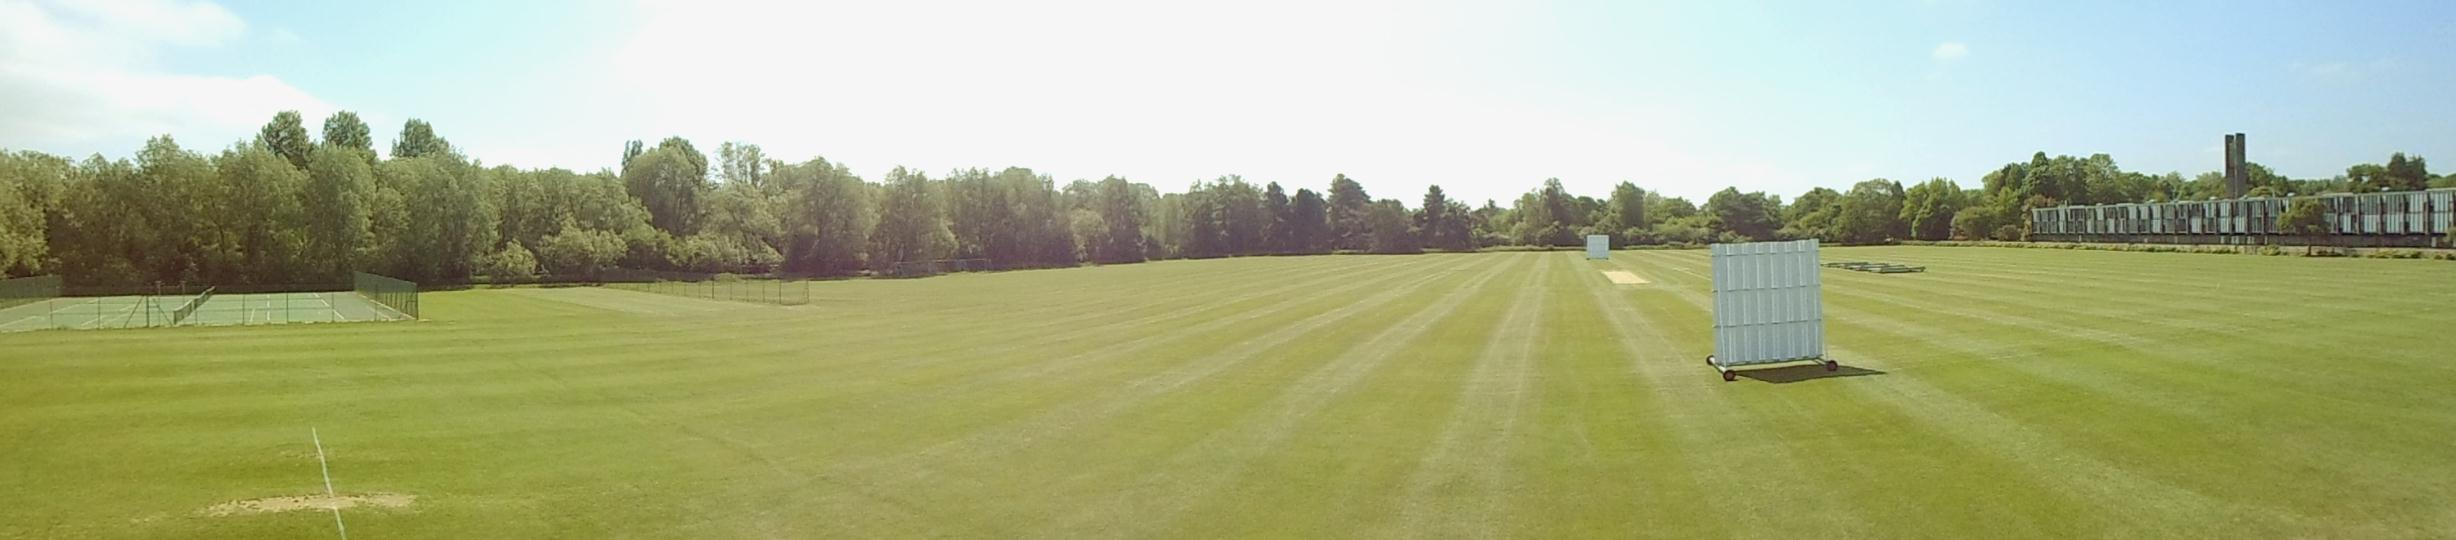 Merton College Playing Fields, Spring 2018